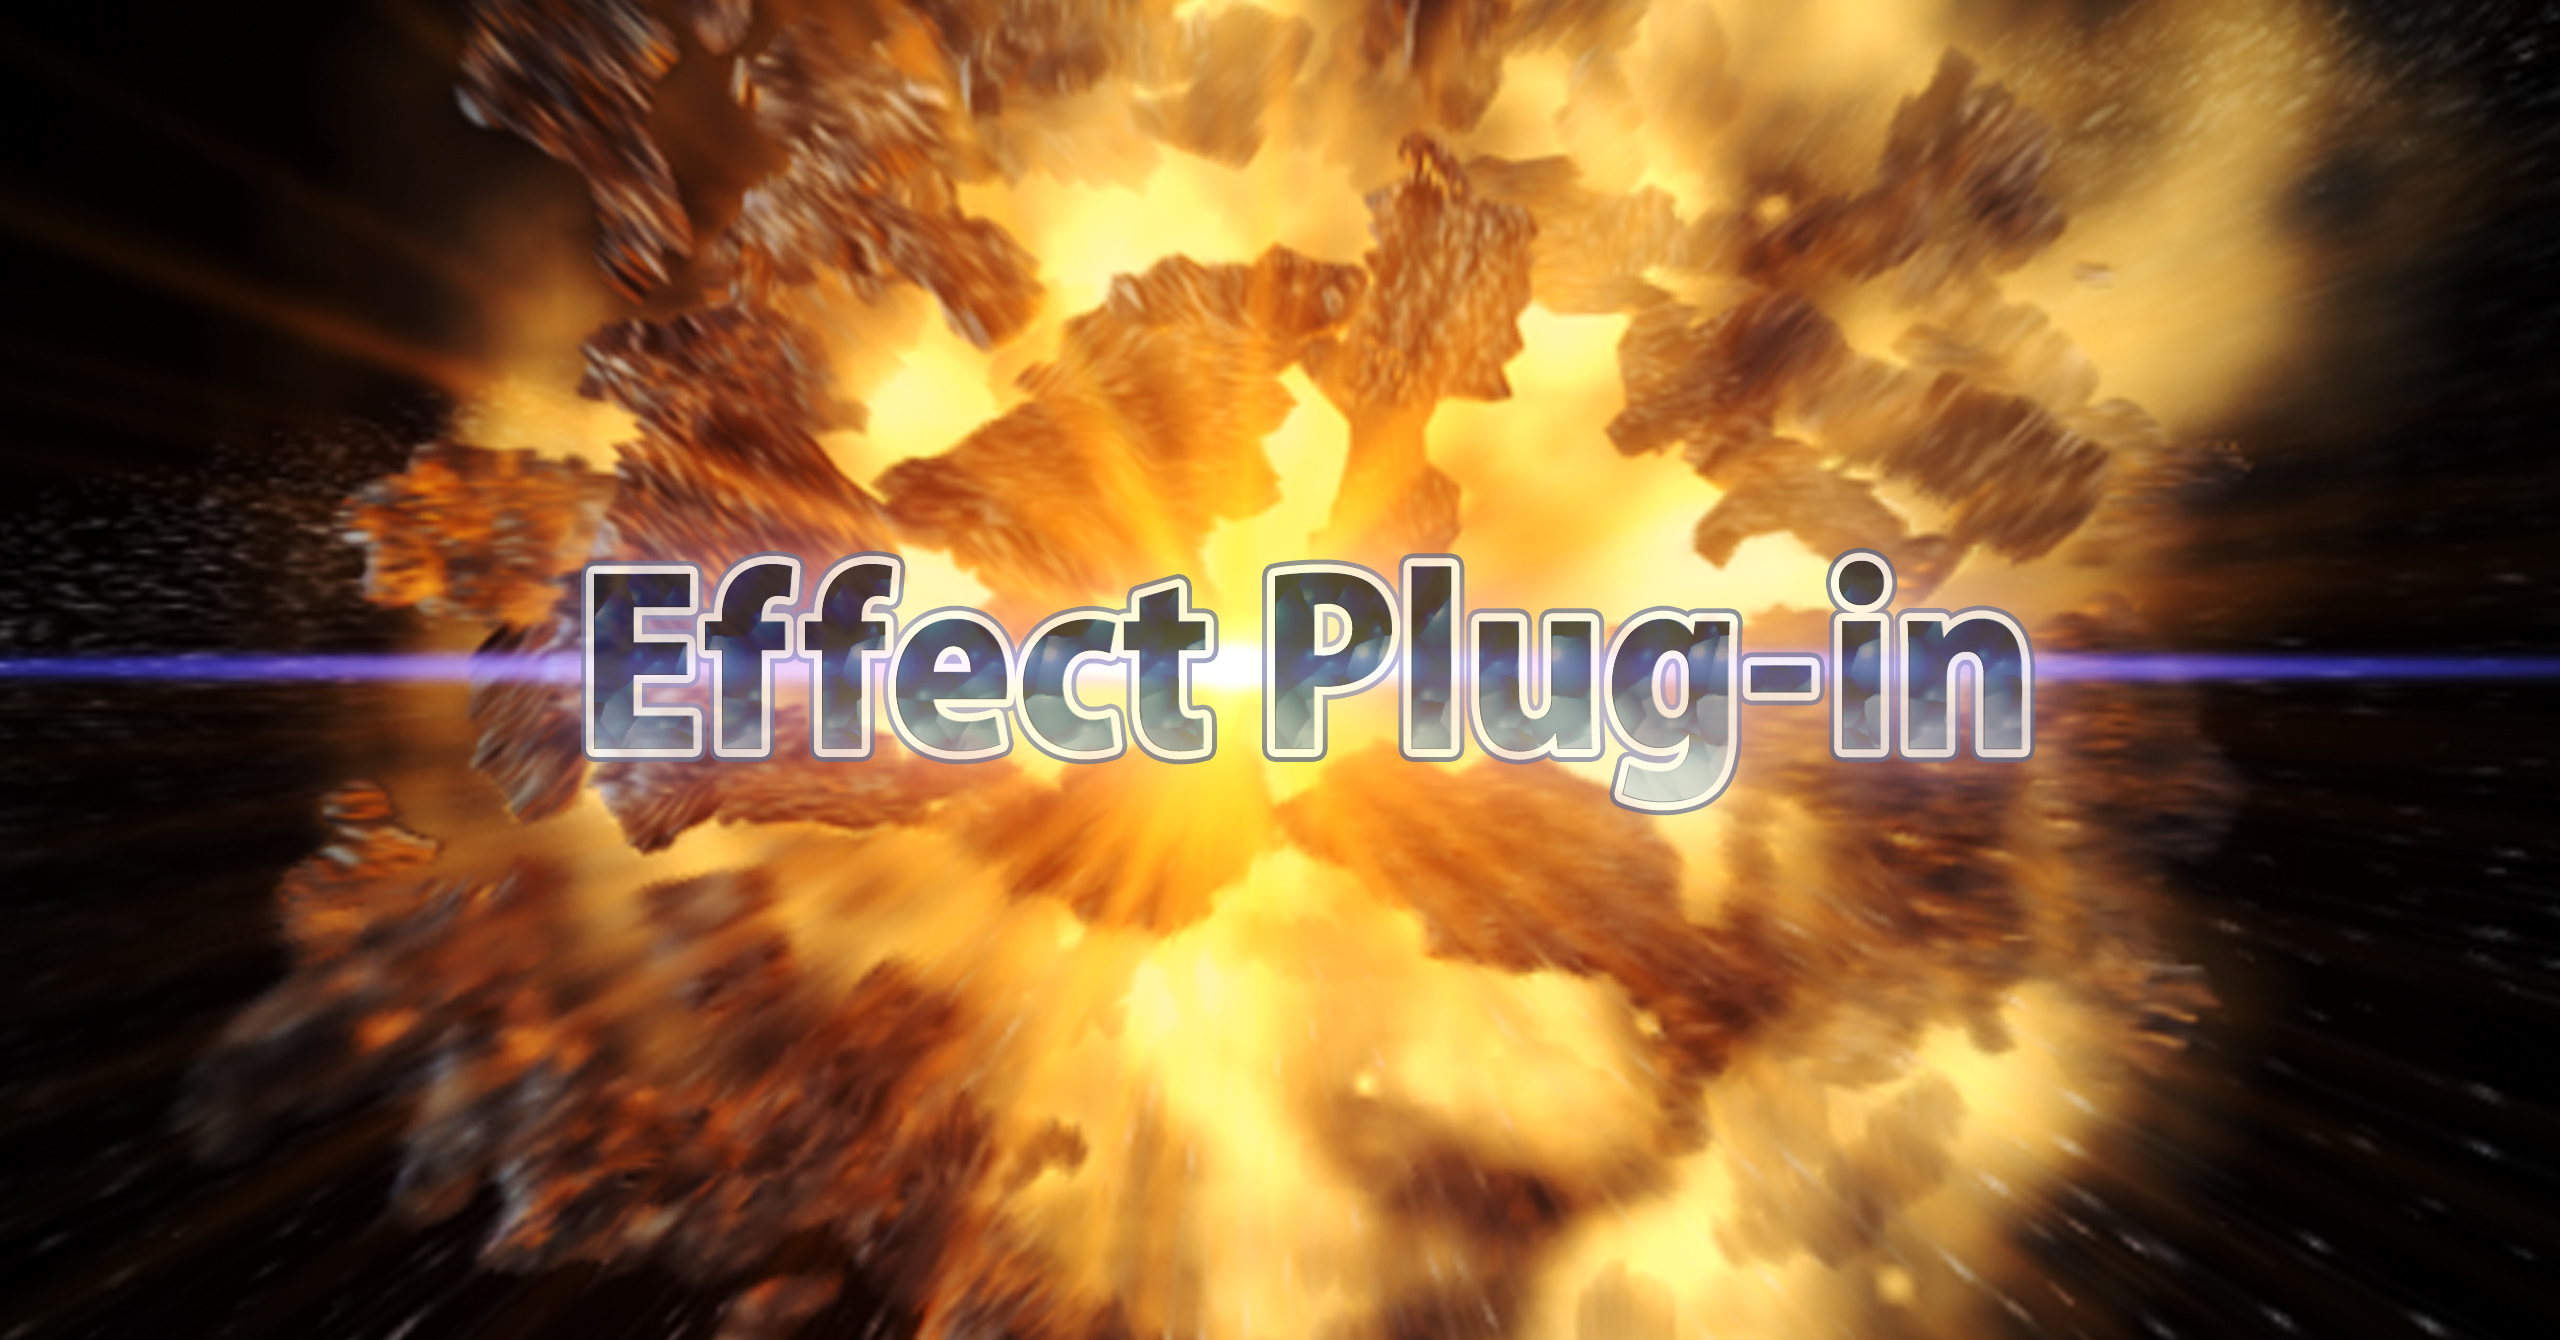 Effect Plug-in for 3ds Max